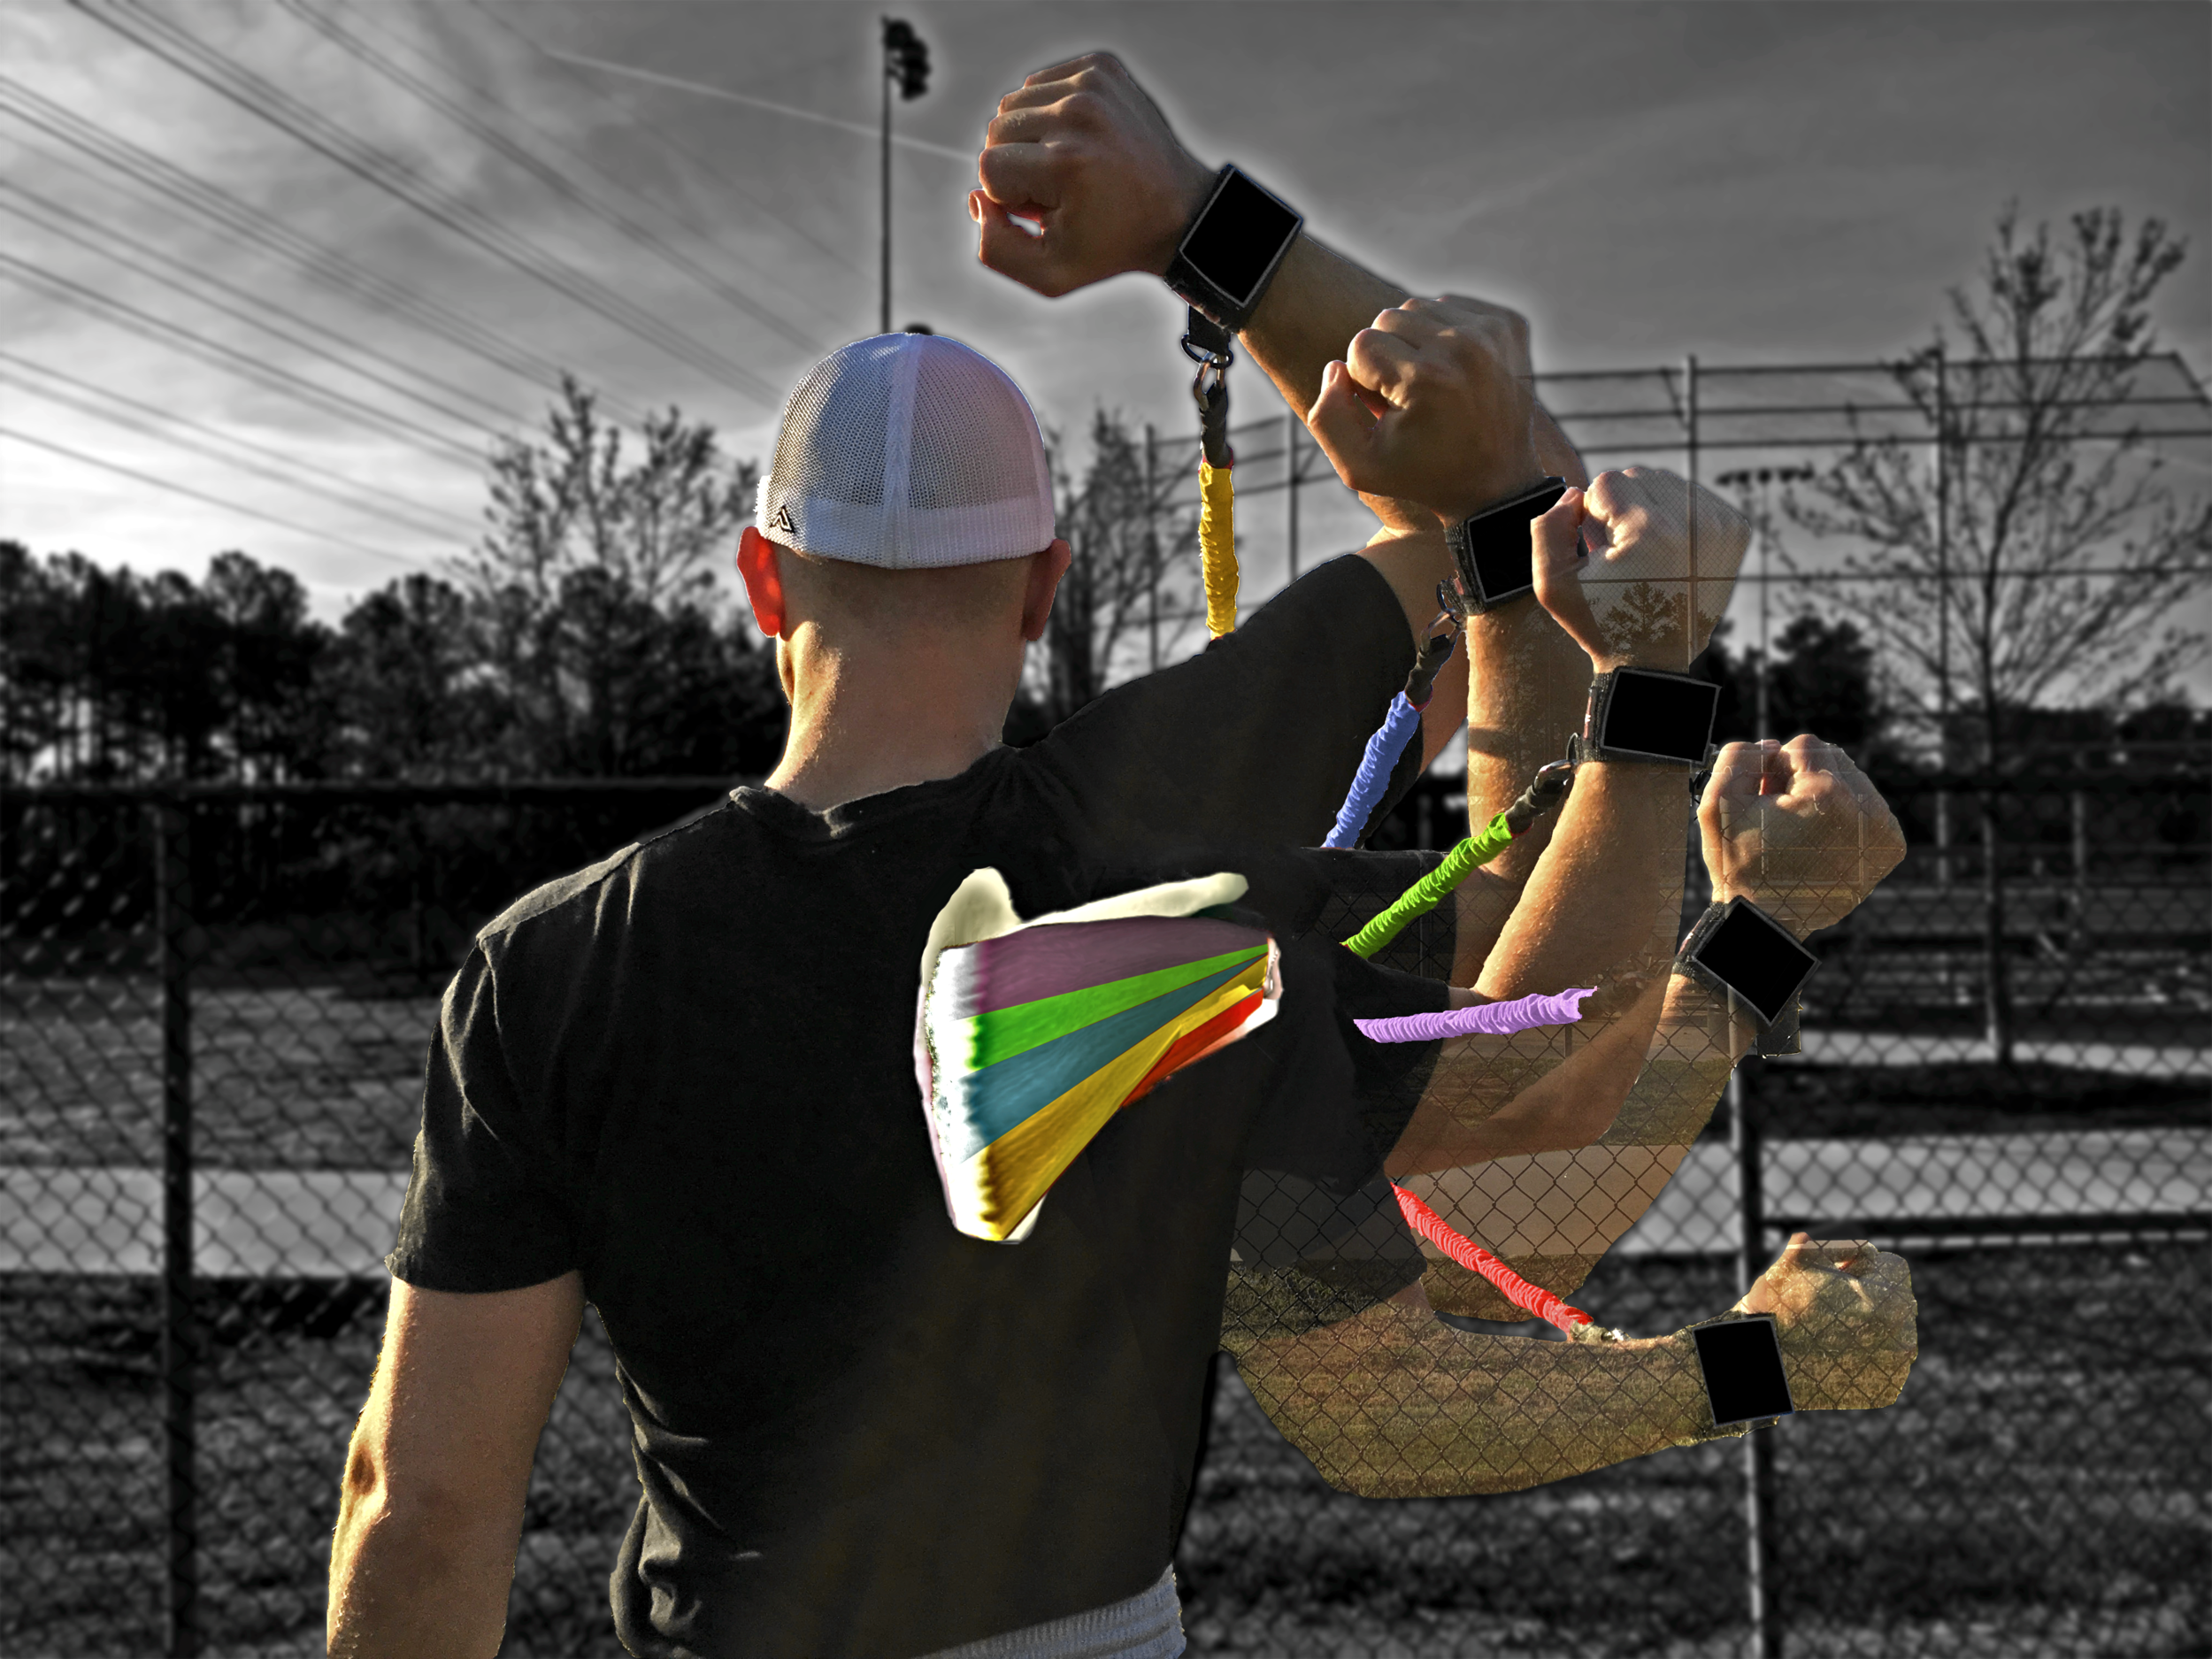 The Difference - Learn more about the Thrower's Isometrics and how they separate this program from the rest of the field.